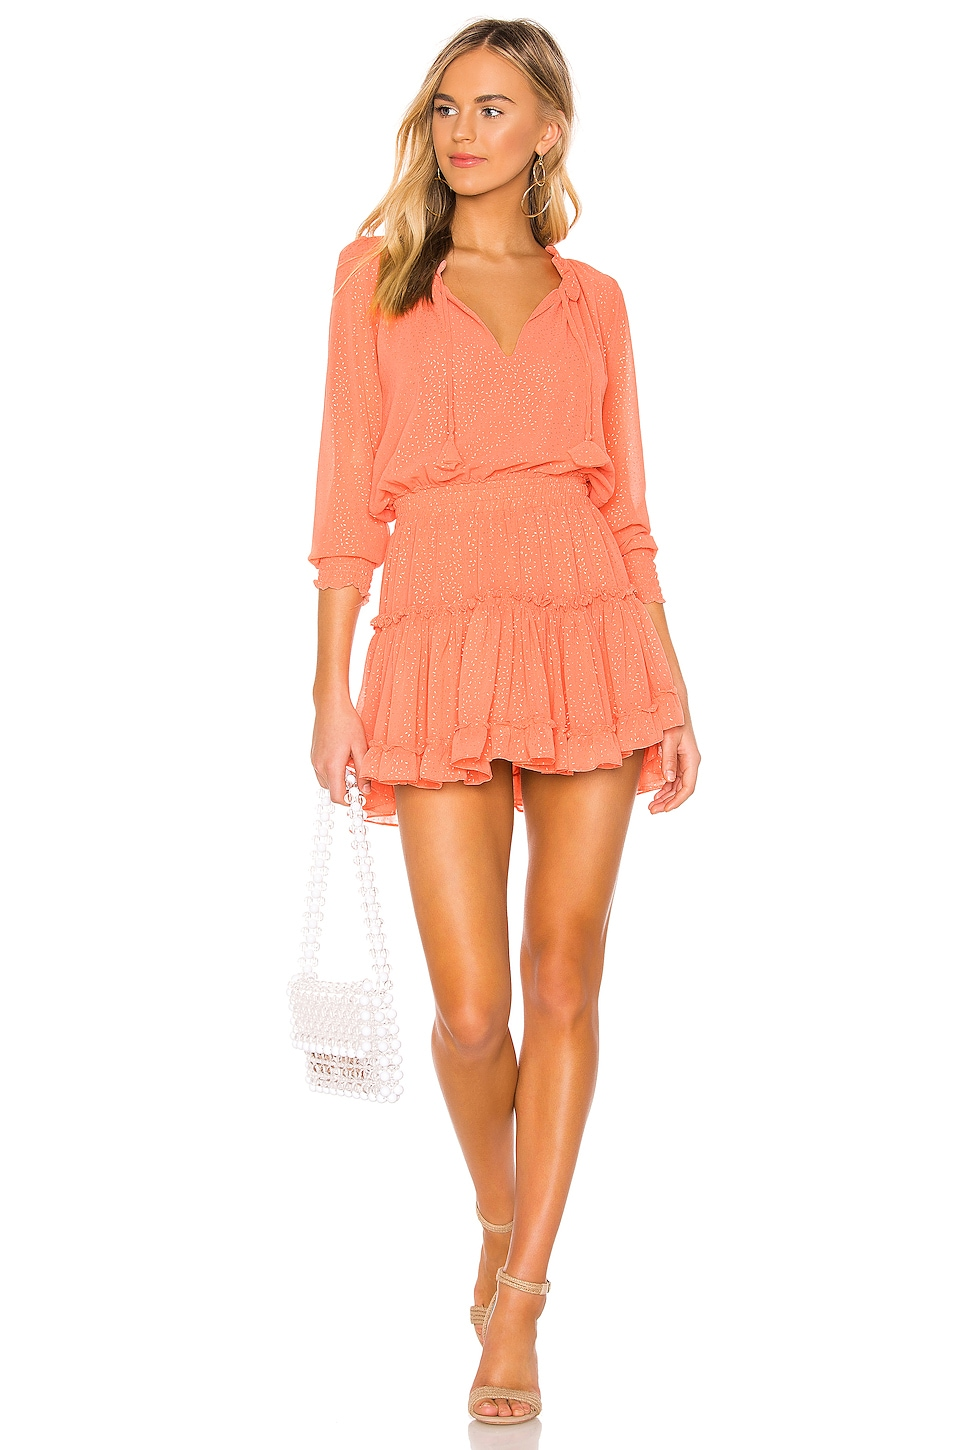 MISA Los Angeles Melodie Dress in Coral